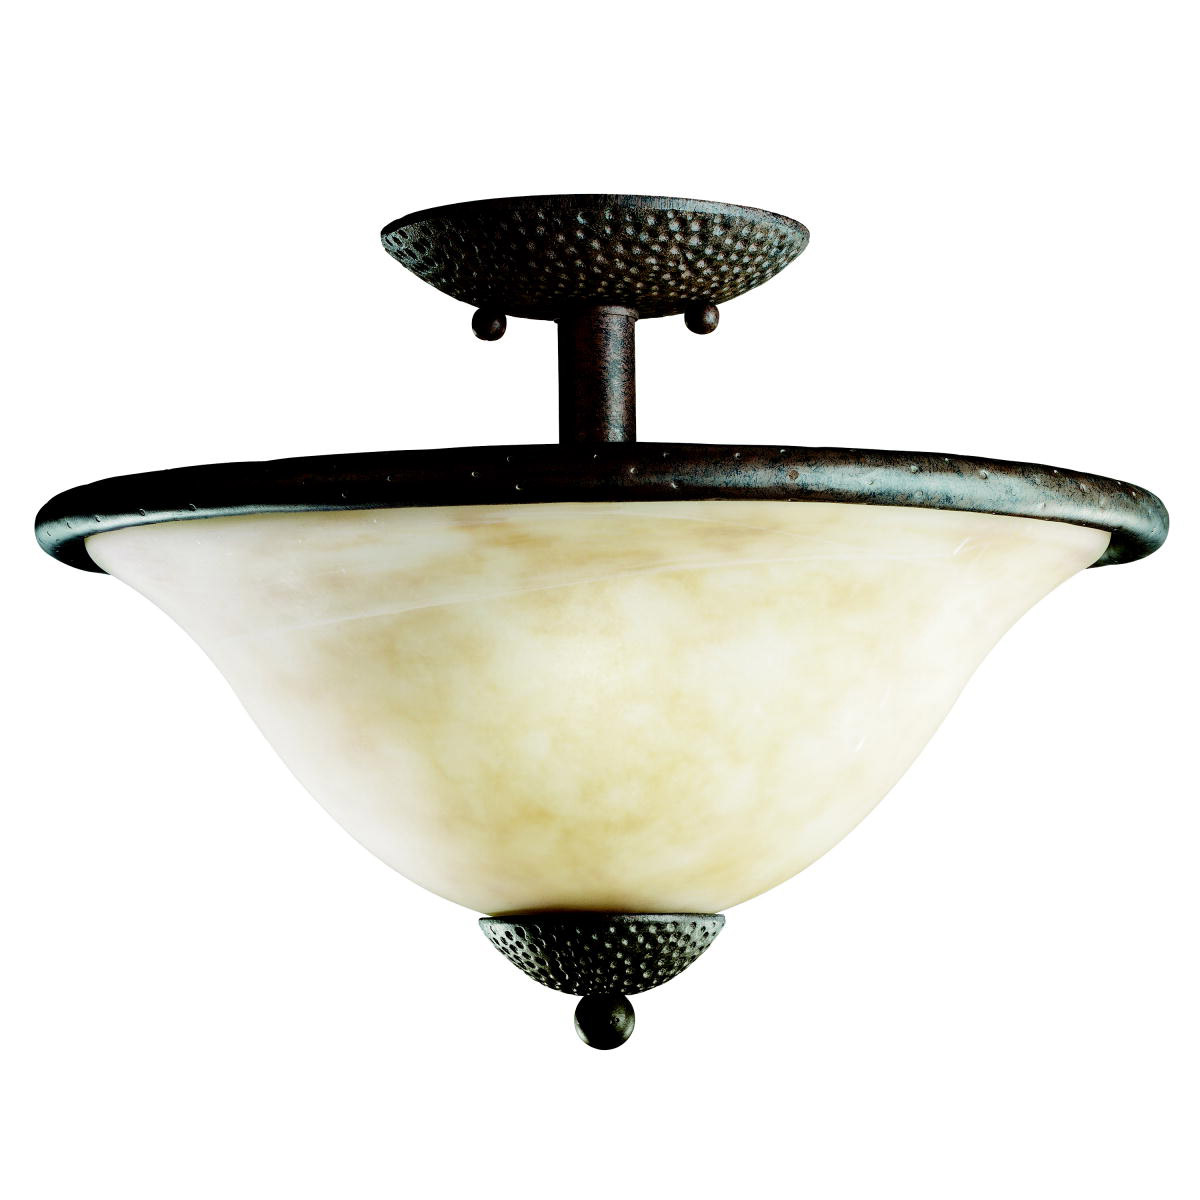 Country ceiling light fixtures country style ceiling for Country lighting fixtures for home